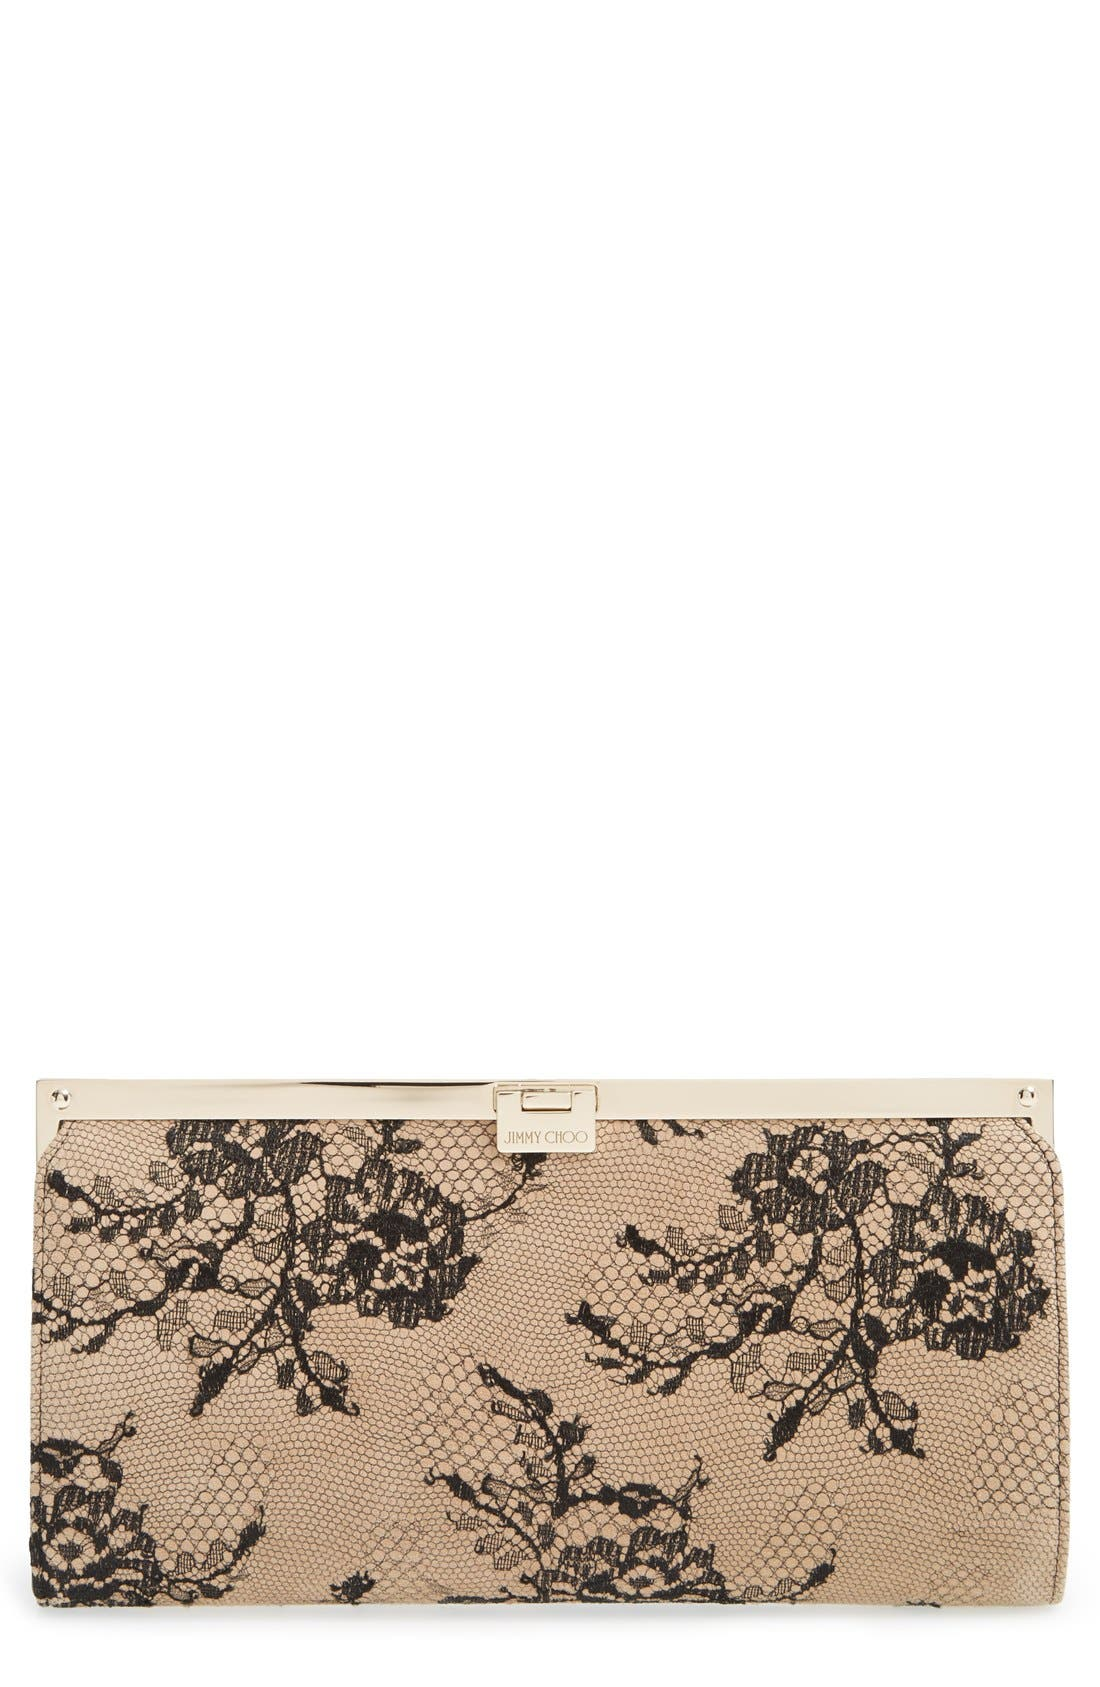 Alternate Image 1 Selected - Jimmy Choo 'Camille' Lace & Leather Clutch